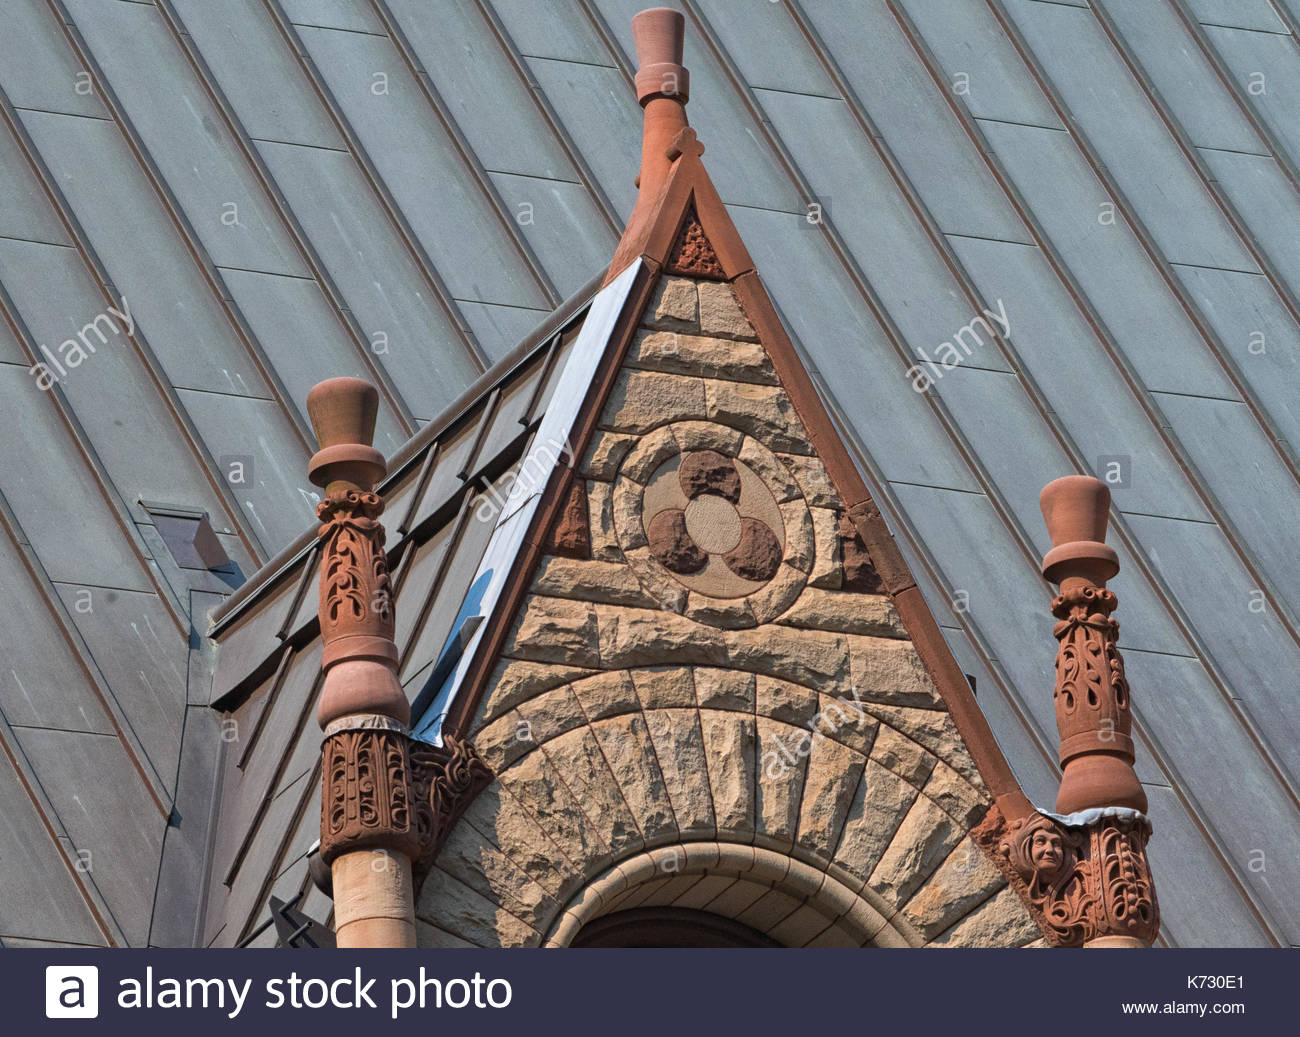 Old City Hall Richardsonian Romanesque Revival architectural details. A turret in the roof.  The red stone old building is a tourist attraction in the - Stock Image